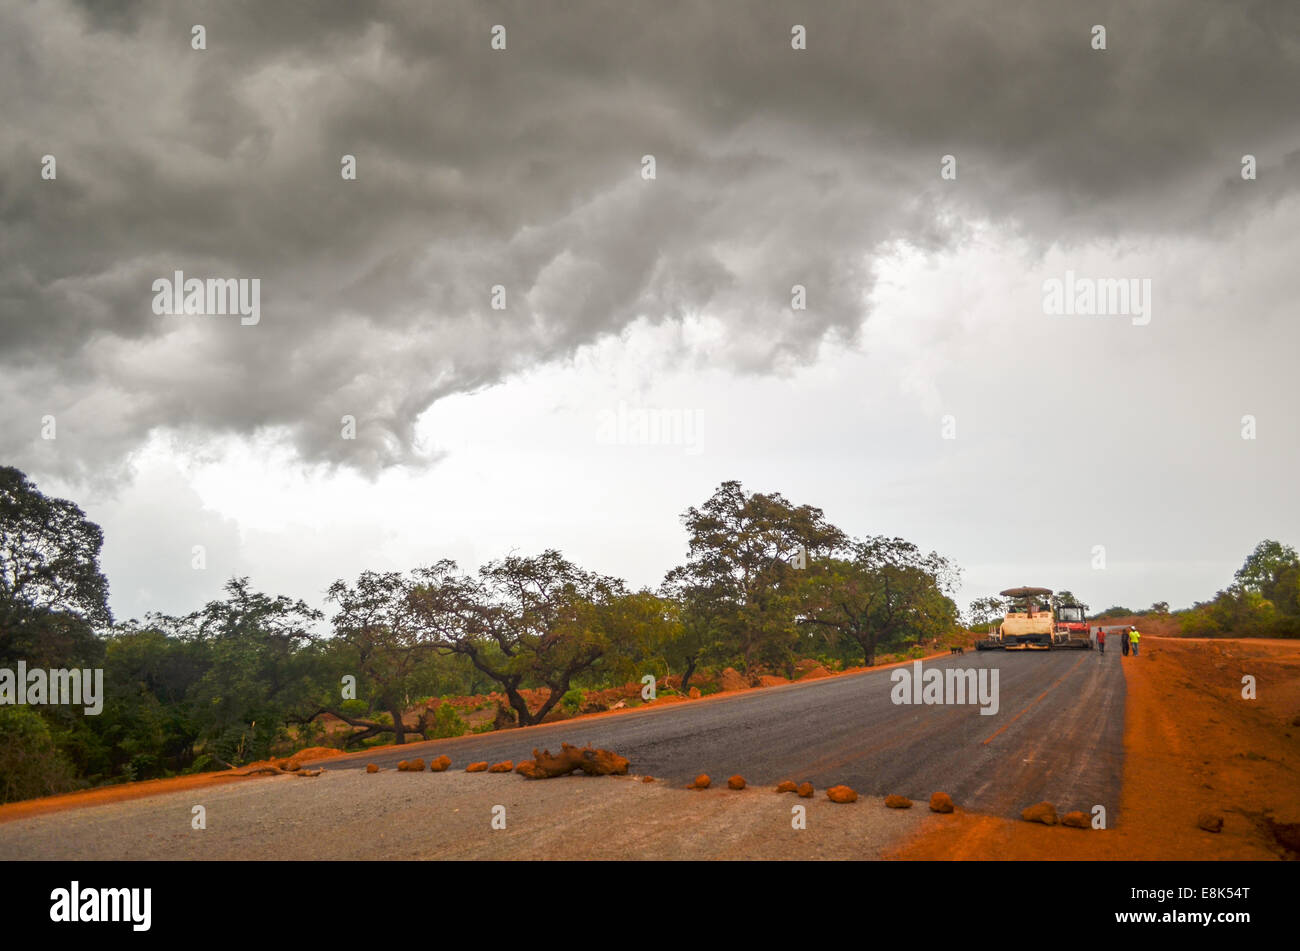 Road construction during the rainy season with threatening clouds, in the Fouta near Labé, Guinea, Africa - Stock Image